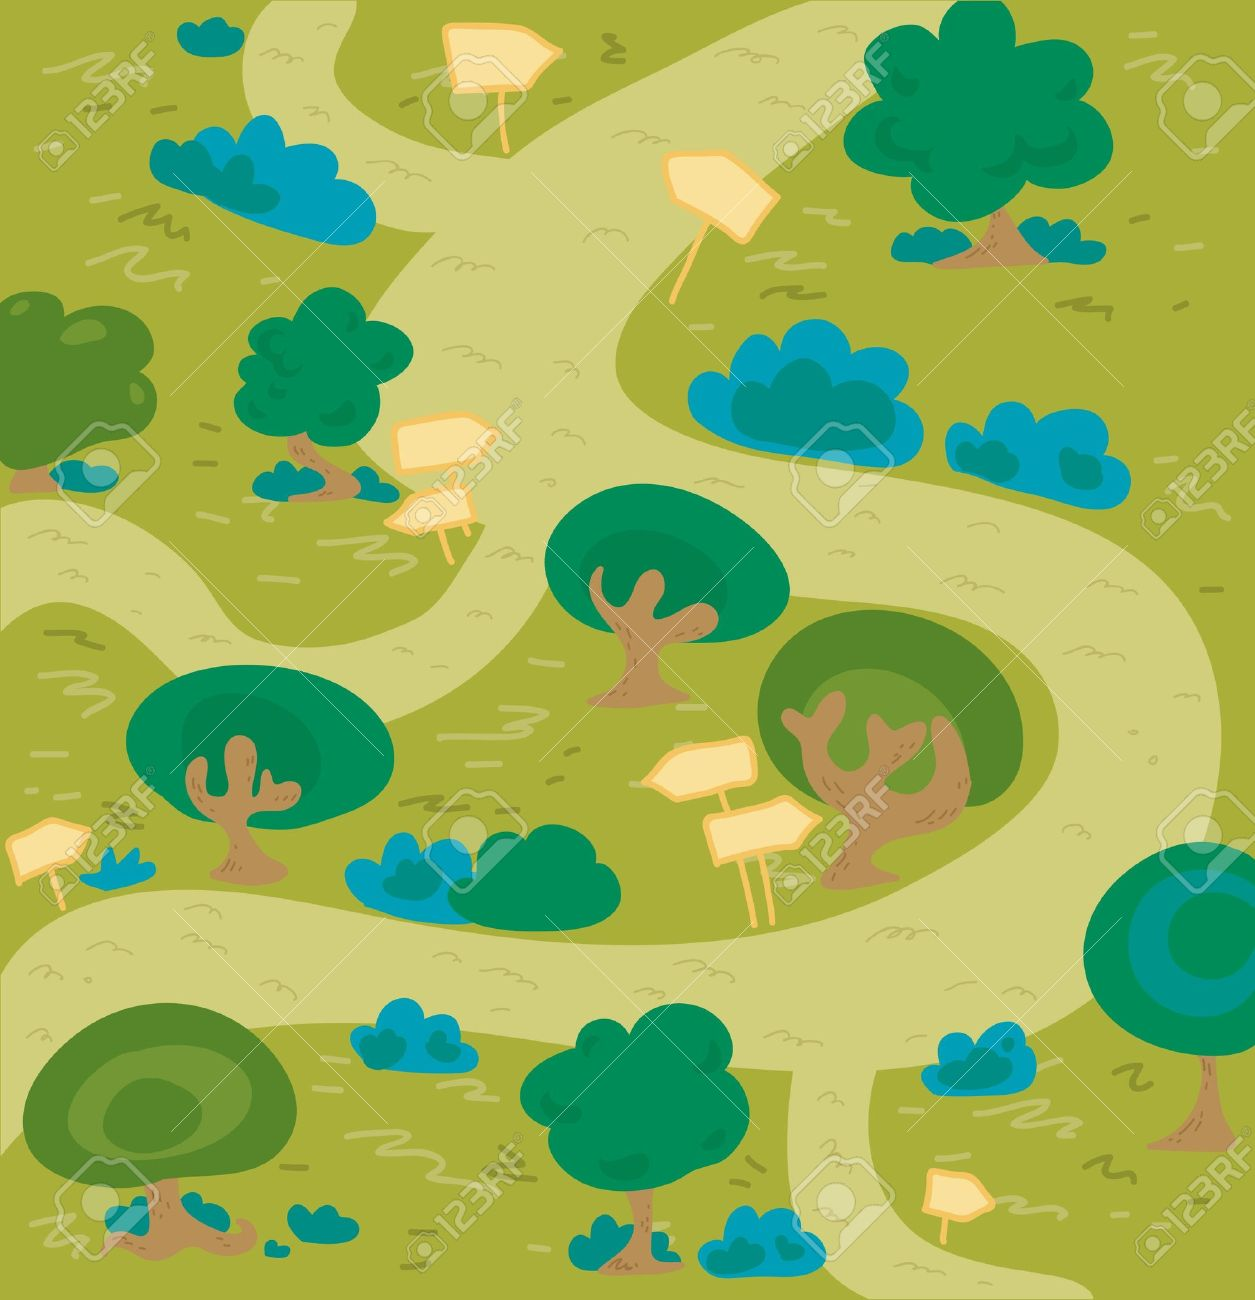 Forest trail clipart.